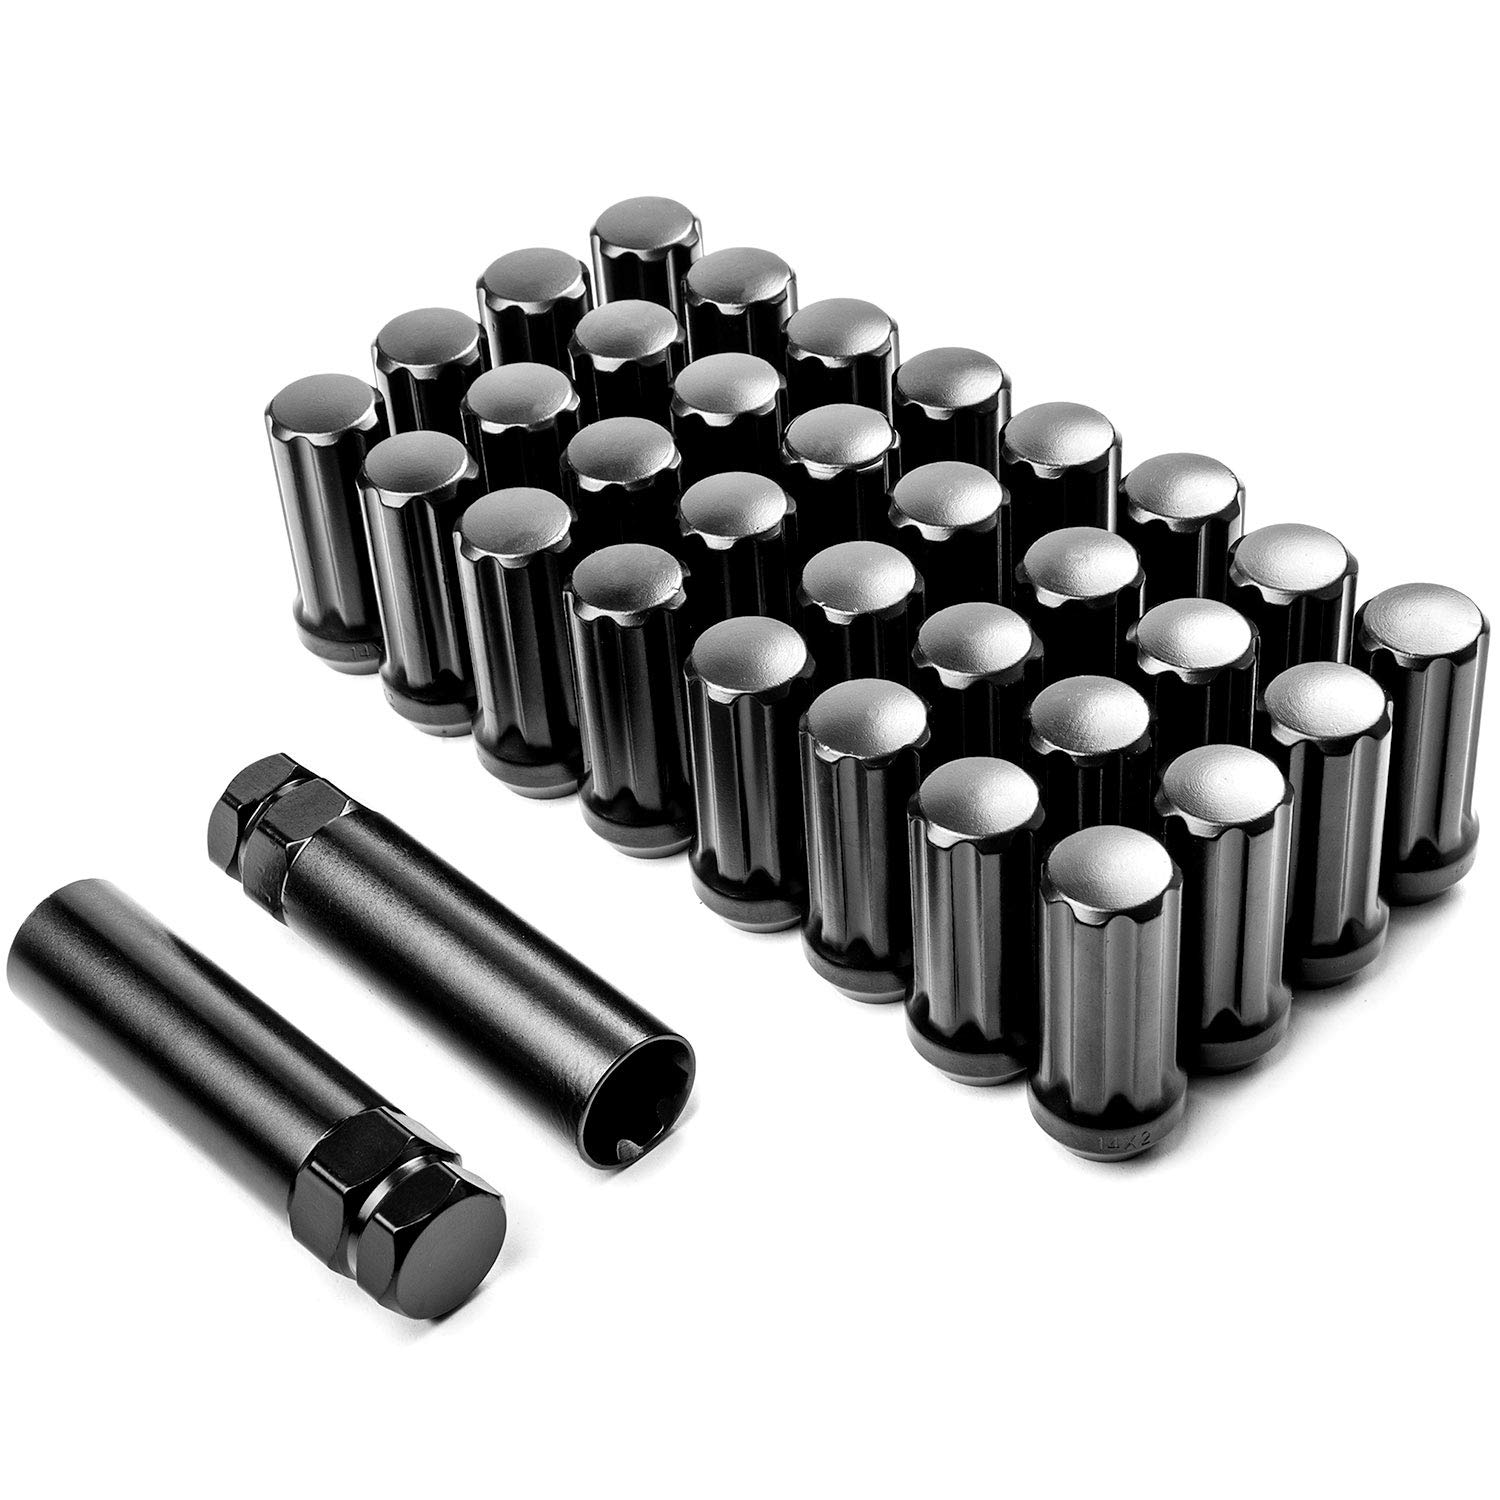 24 pc Chrome Spline Locking Lug Nuts 14x2.0 Thread Pitch 6x135 2003-2014 F150 2 Locking Socket Keys Venum Wheel Accessories